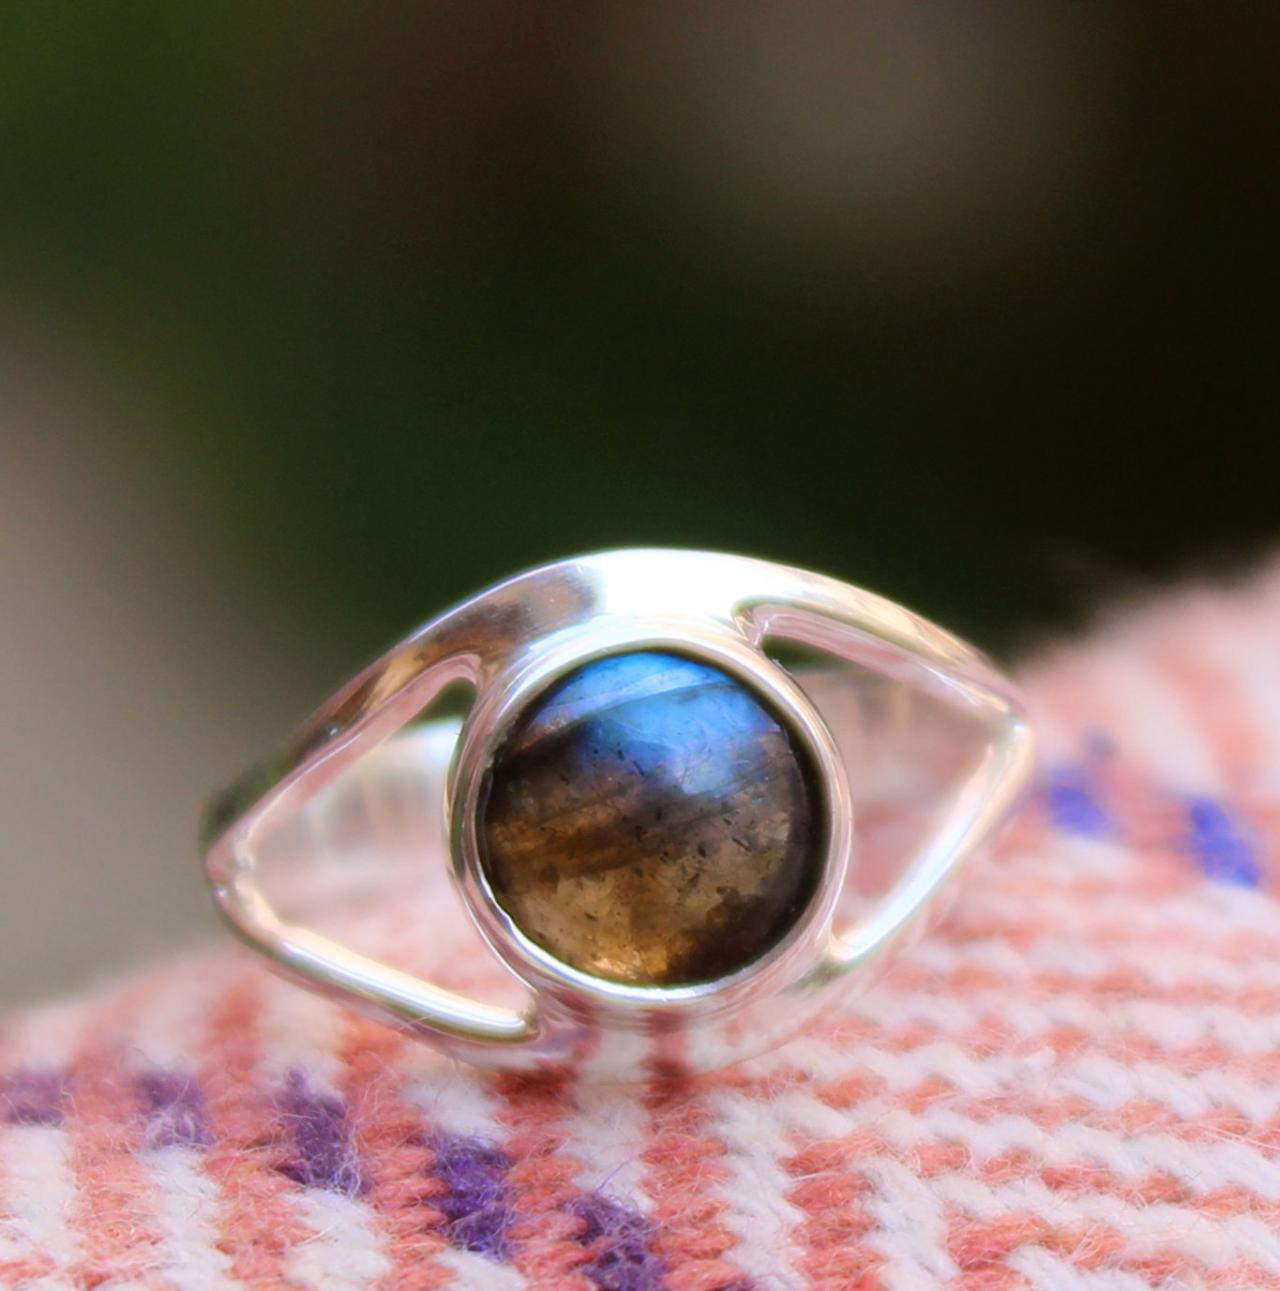 Evil Eye Ring Protective Jewelry,Natural Fire Labradorite Ring,Solid 925 Sterling Silver Gemstone Jewelry,Birthday Gift,Daily Wear Ring Gift.